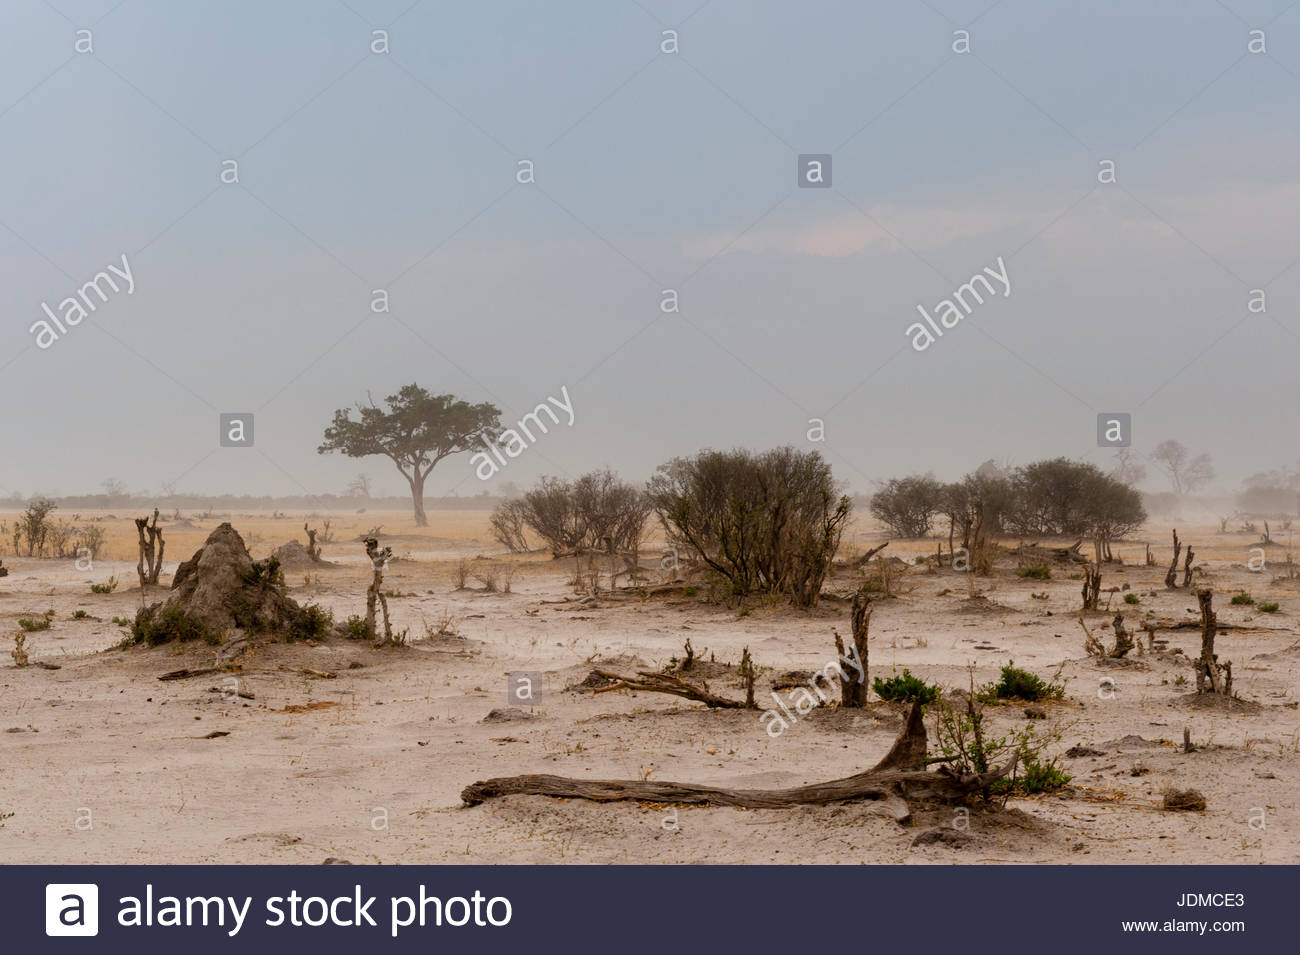 A sand storm approaching. - Stock Image